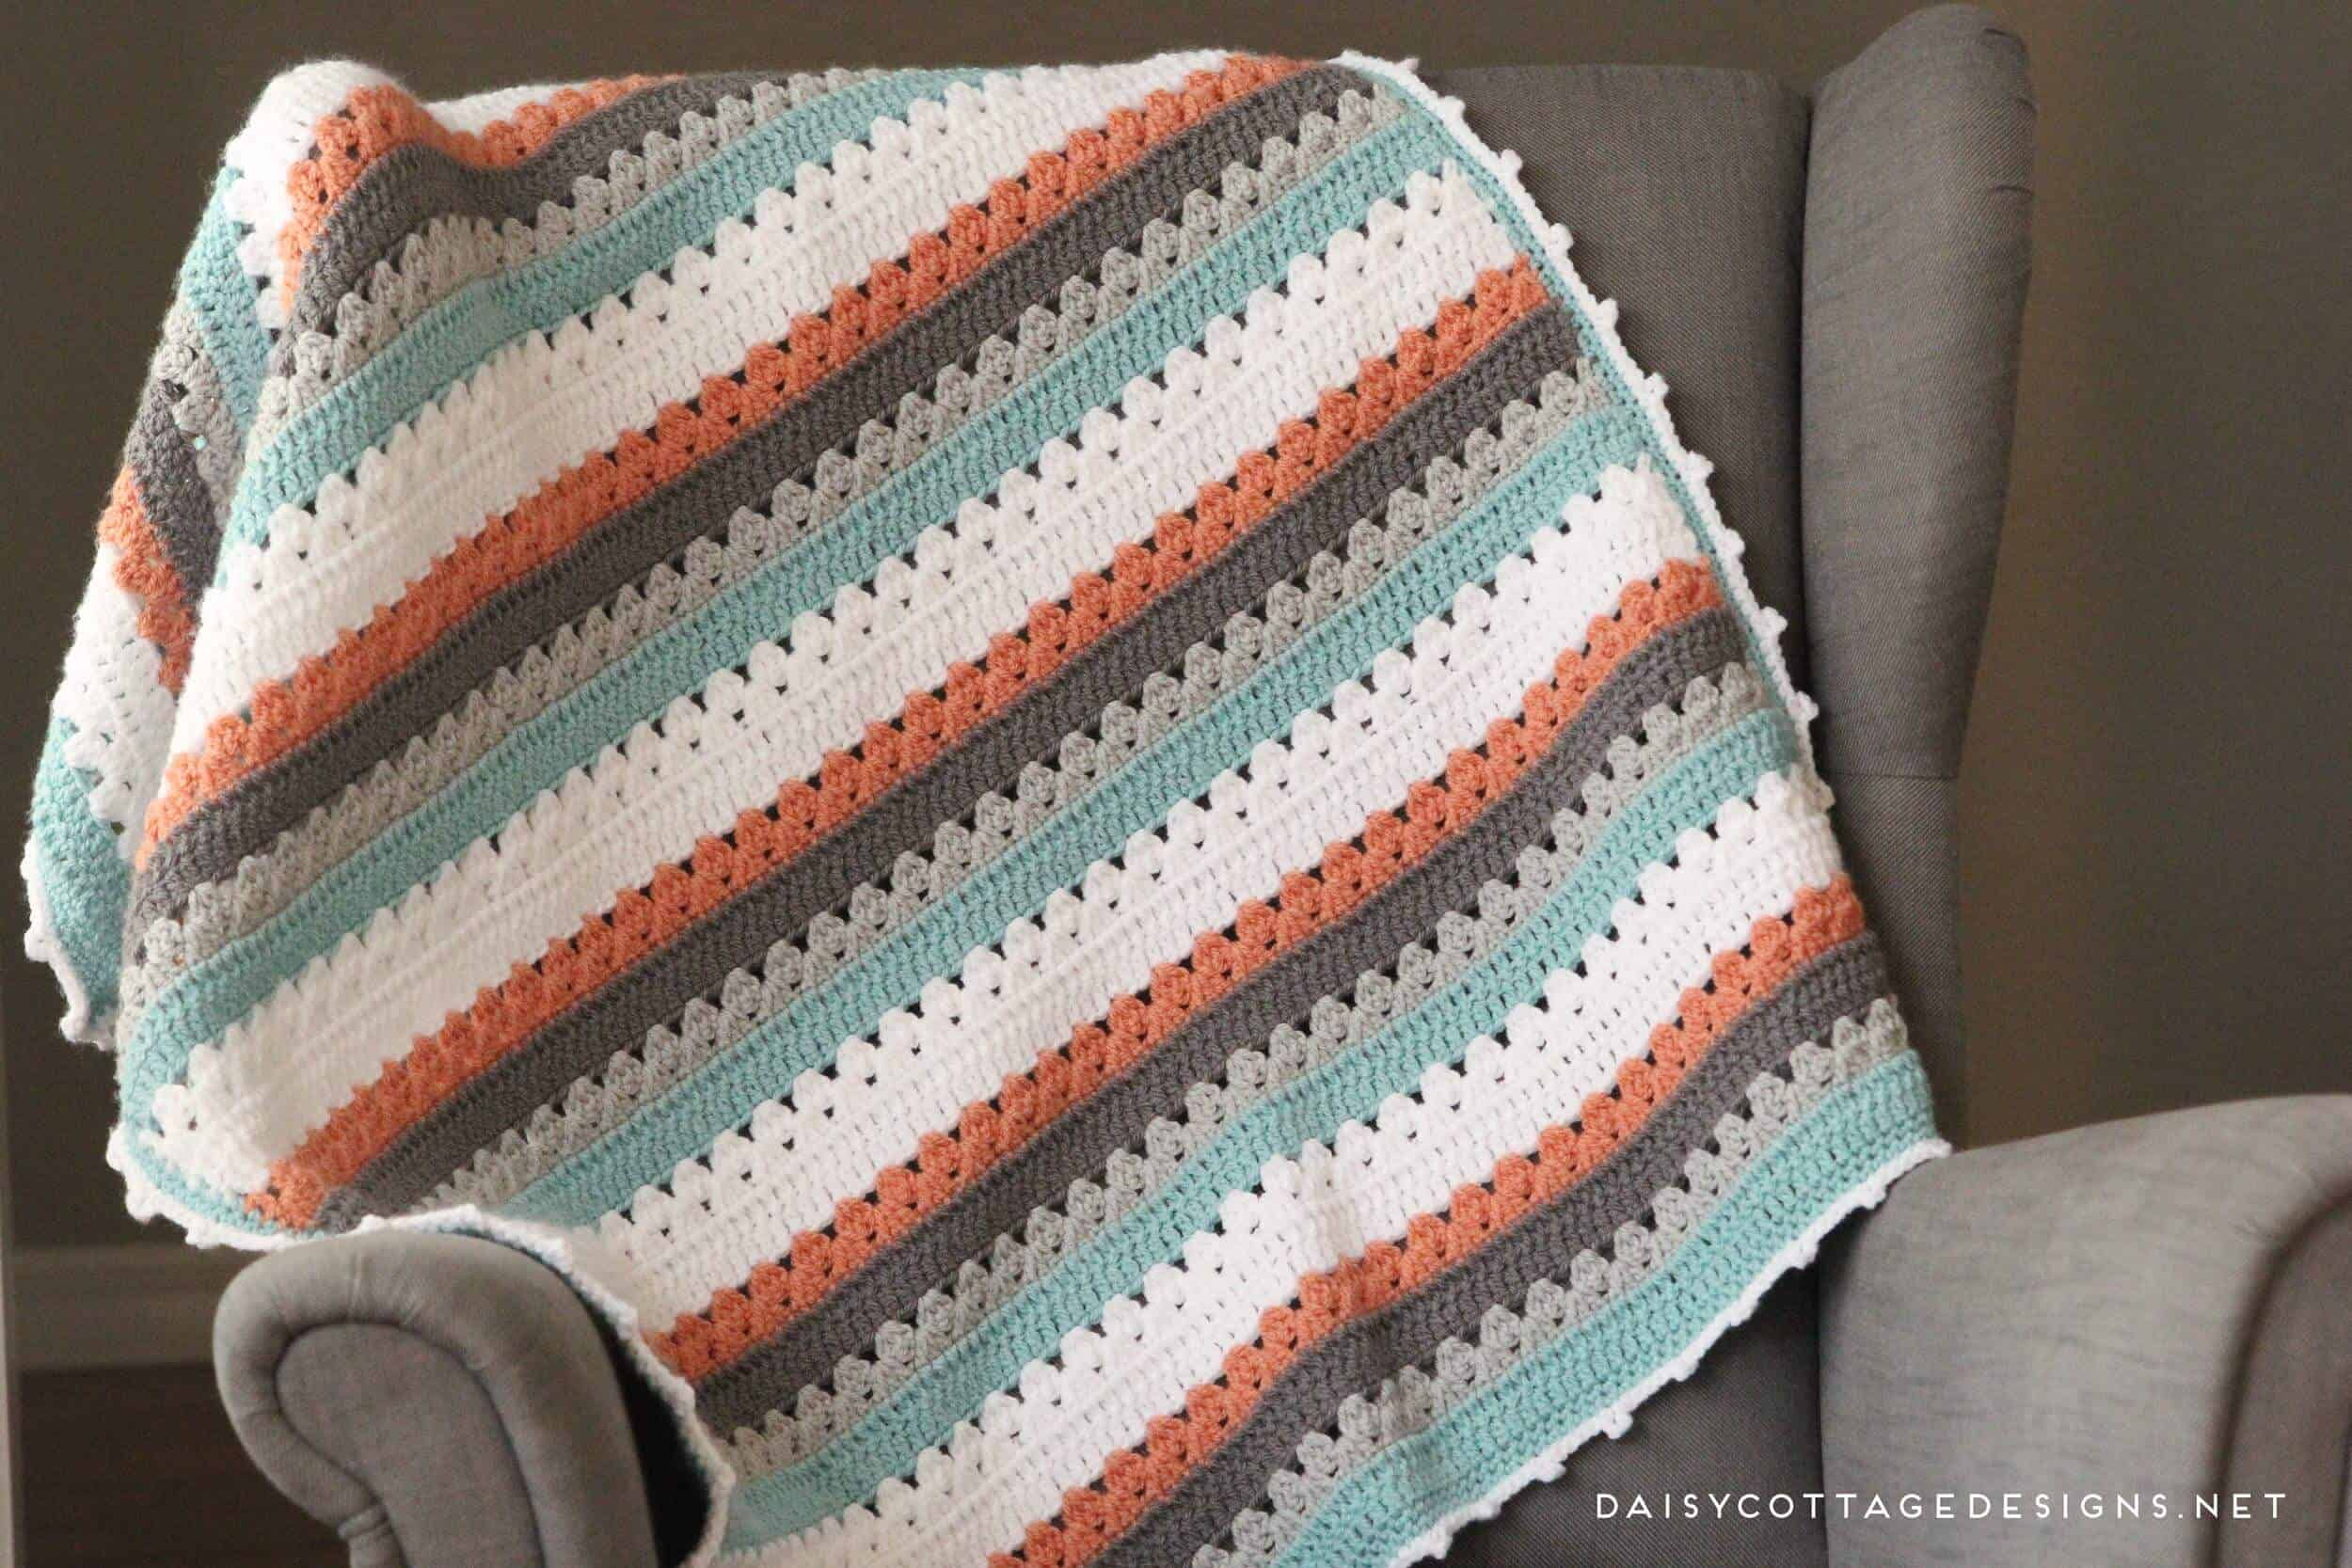 Crochet Blanket Pattern: A Quick & Simple Pattern - Daisy Cottage ...